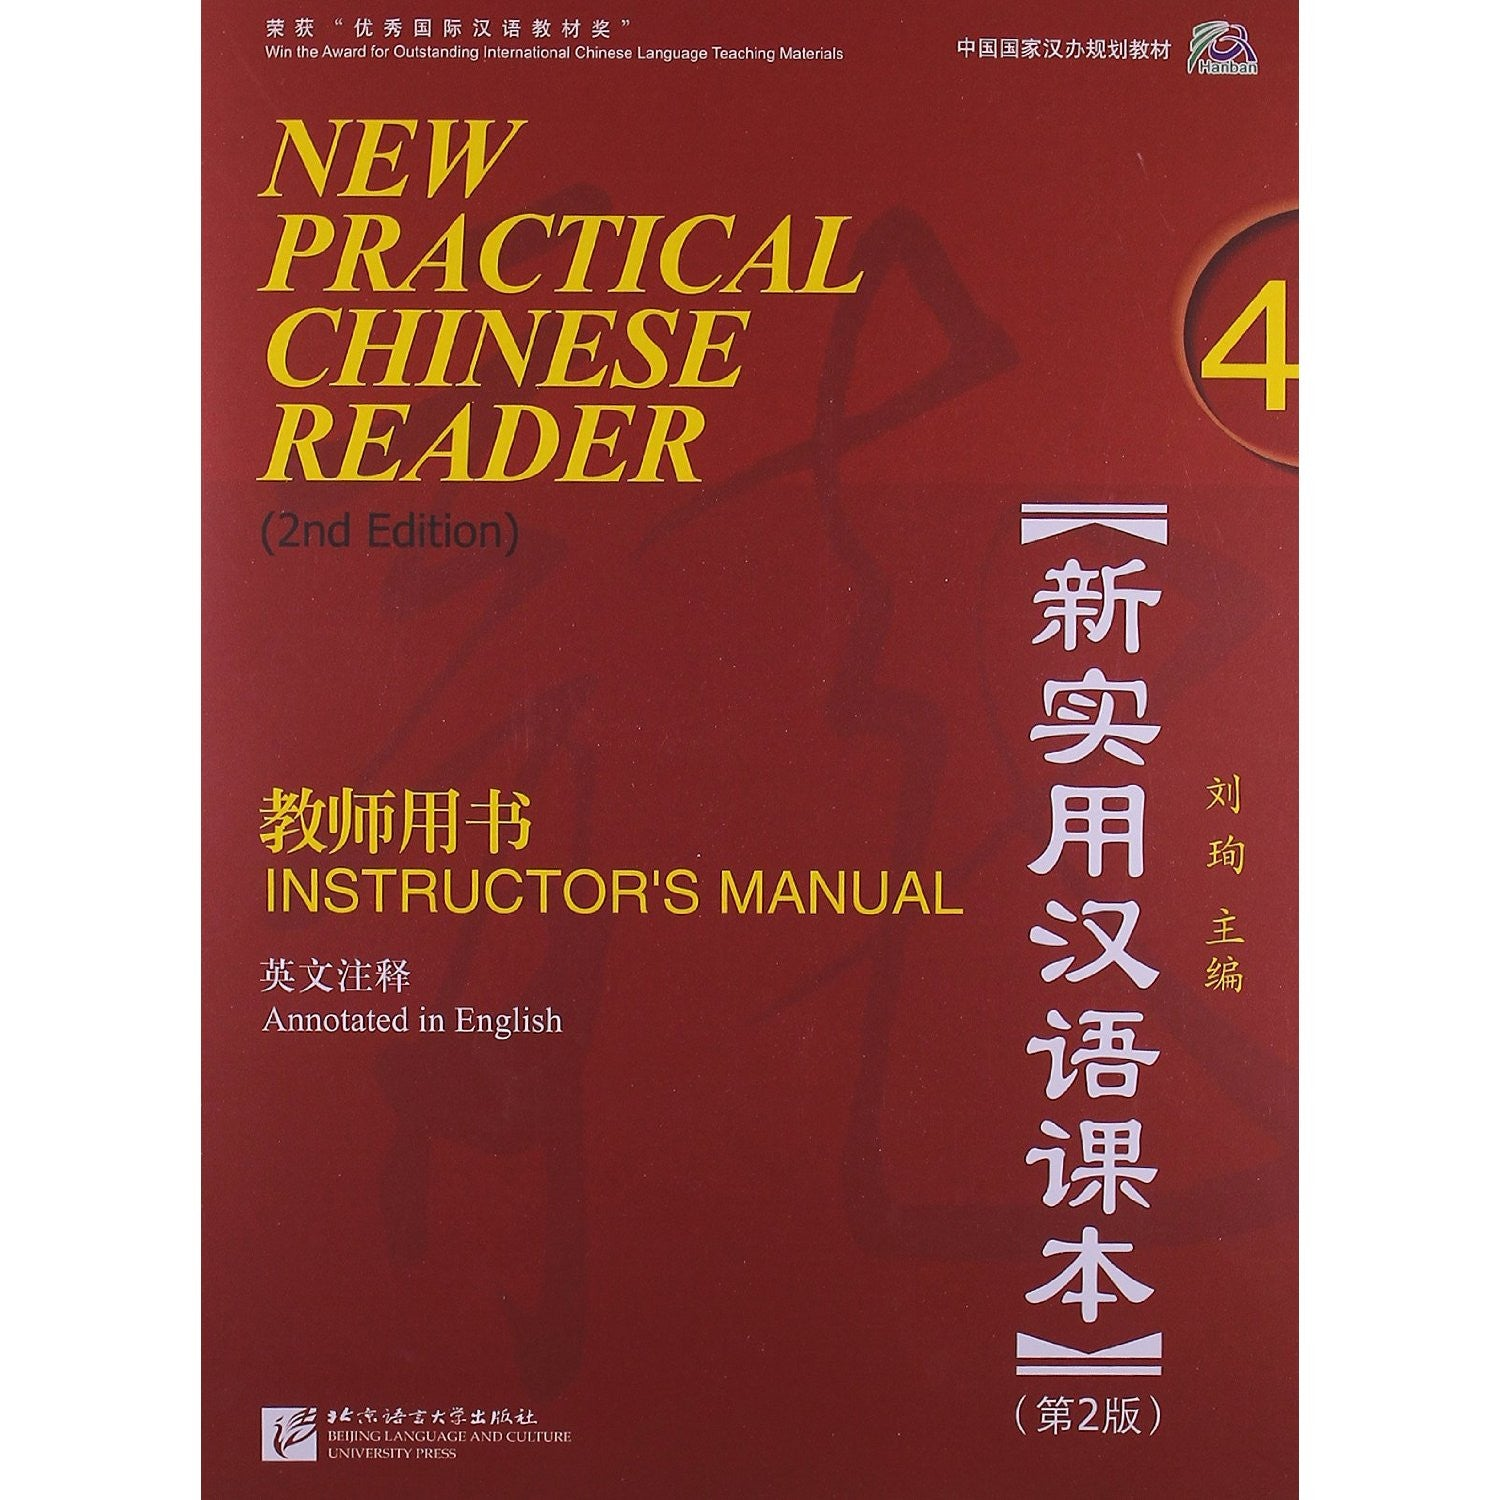 New Practical Chinese Reader Vol. 4 (2nd Ed.): Instructor's Manuel (W/MP3)